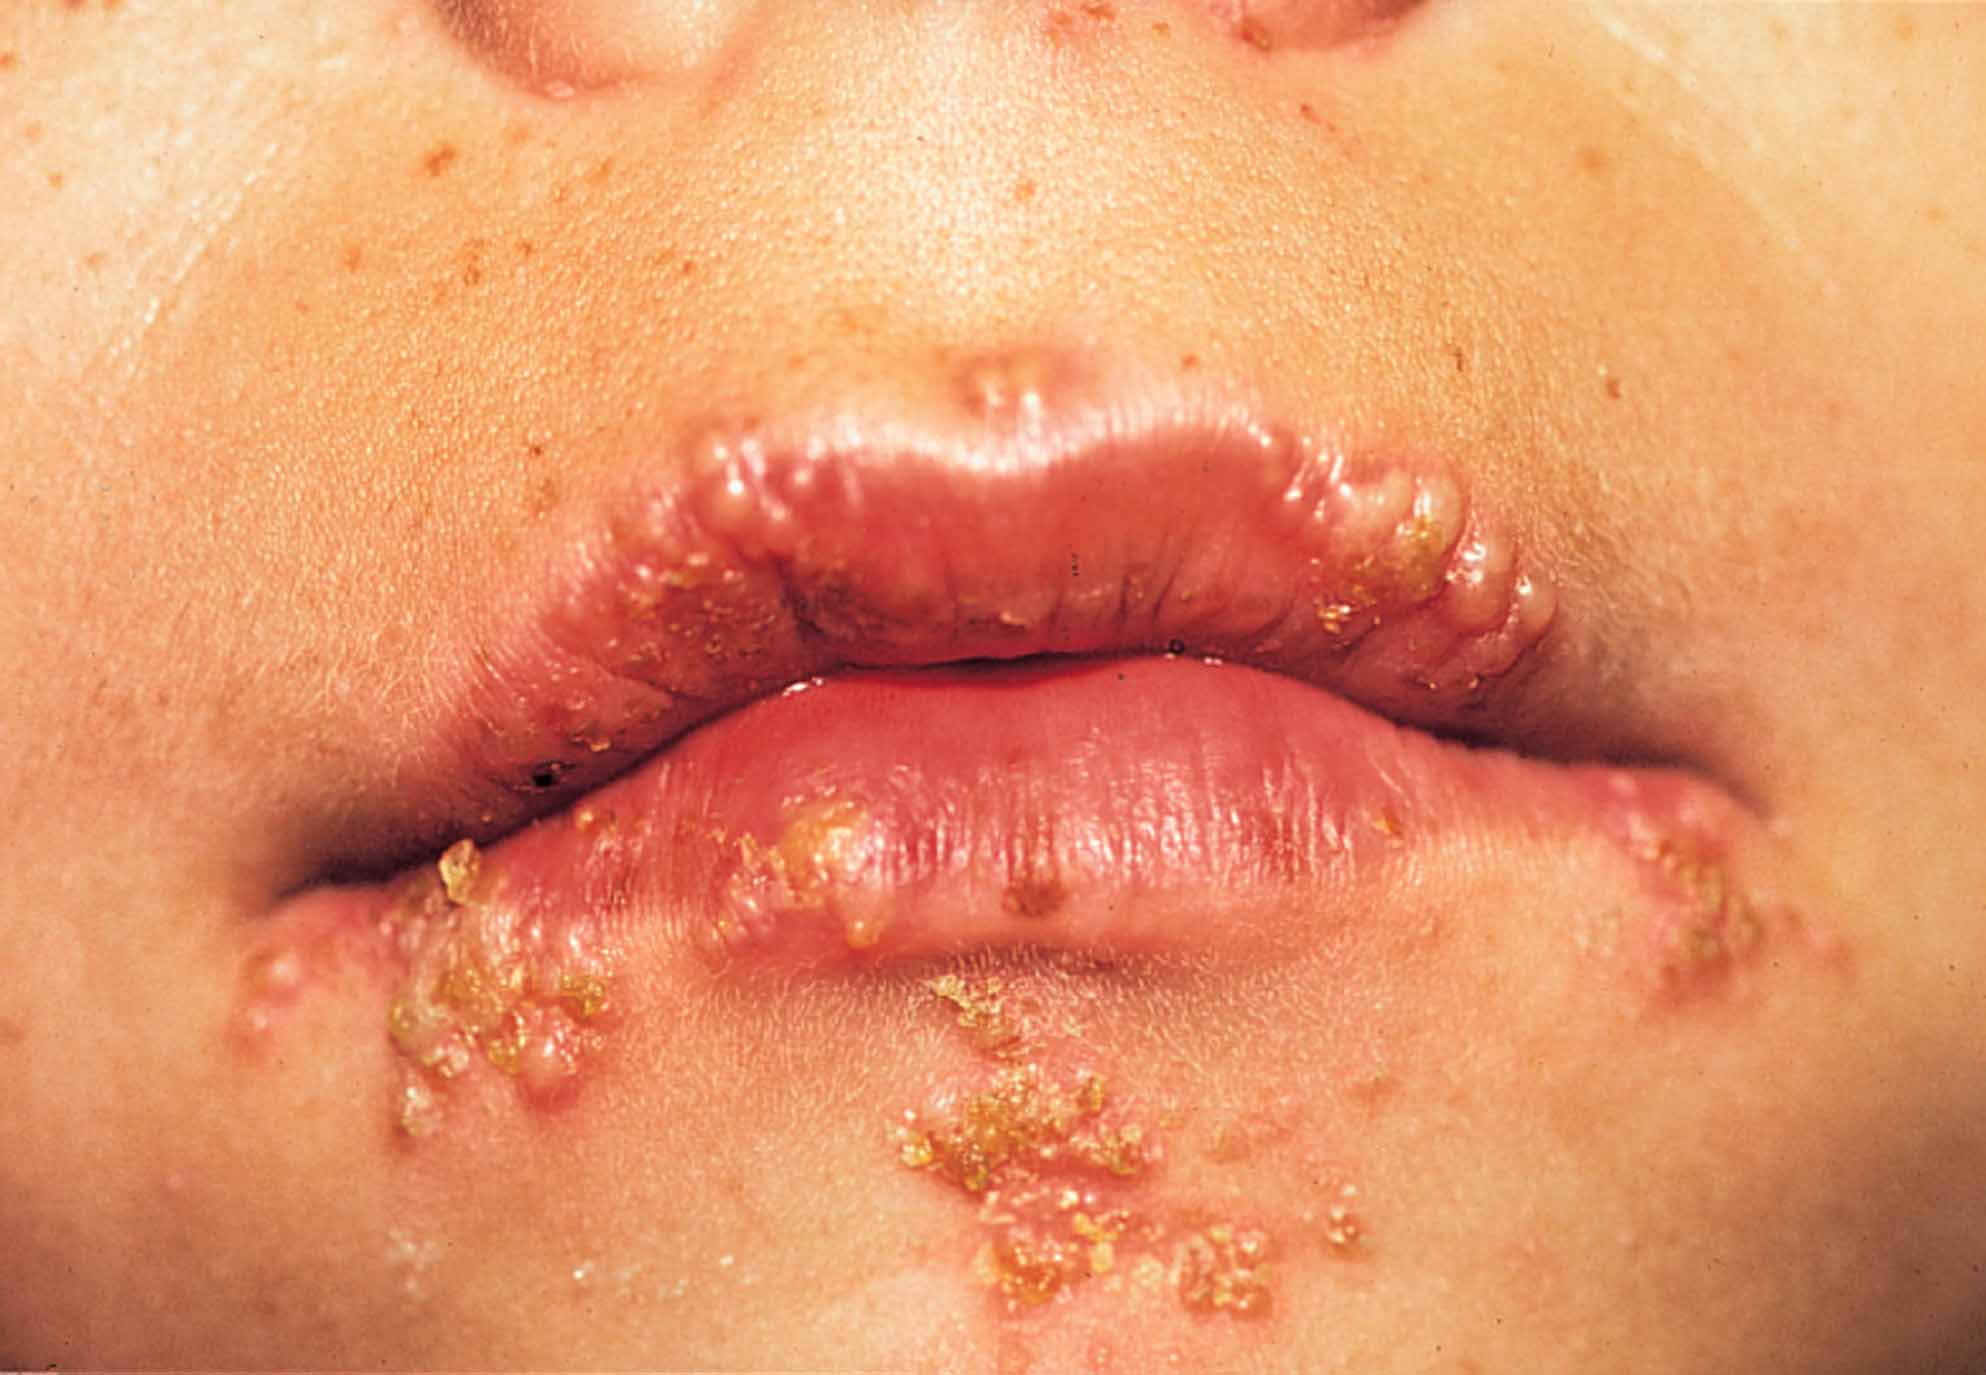 Pictures of oral herpes 10